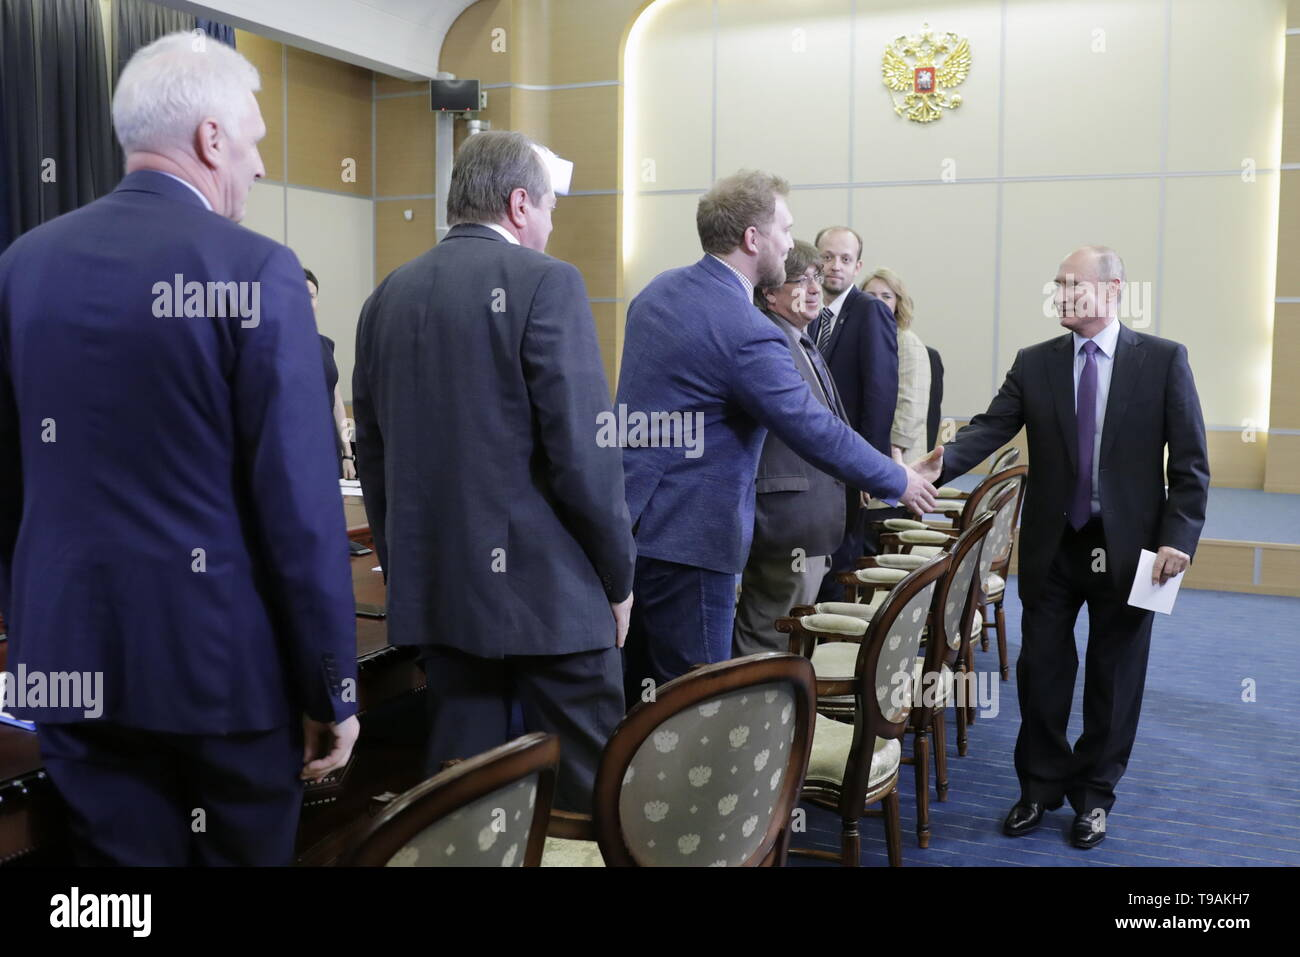 Sochi, Russia. 17th May, 2019. SOCHI, RUSSIA - MAY 17, 2019: Russian Presidential Aide Andrei Fursenko, Konstantin Krutovsky, professor of Genetics at the University of Gottingen (Germany), Bauman Moscow State Technical University Laboratory head Vladimir Lazarev, and Russia's President Vladimir Putin (L-R) during a meeting with the winners of 'megagrants' for scientific research. Mikhail Metzel/TASS Credit: ITAR-TASS News Agency/Alamy Live News Stock Photo